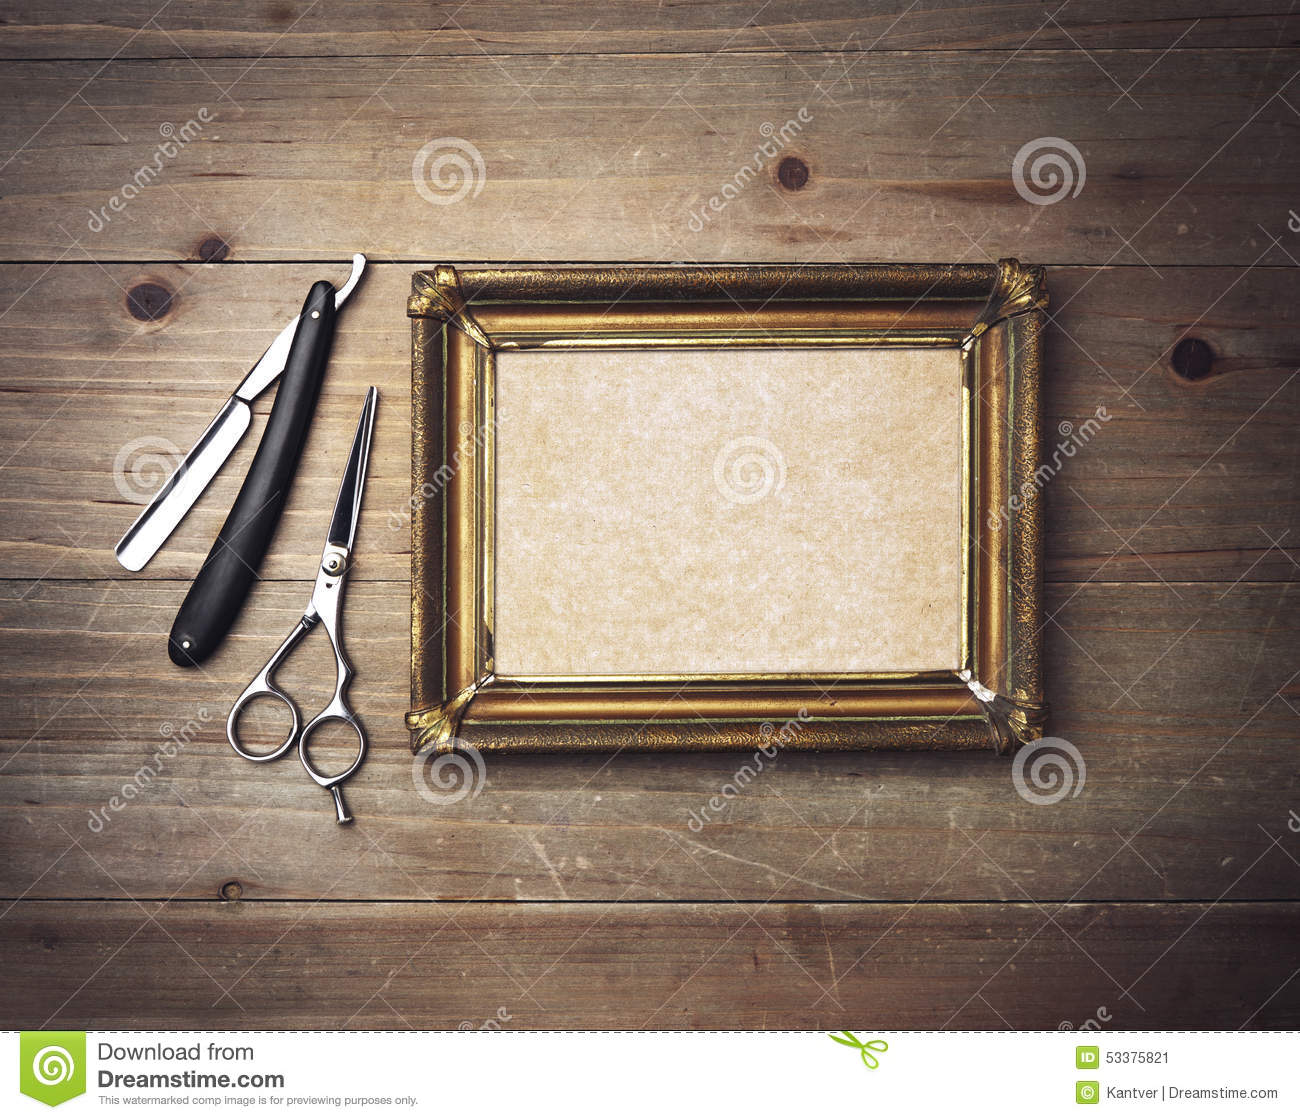 Vintage Barber Tools And White Poster With A Frame Stock